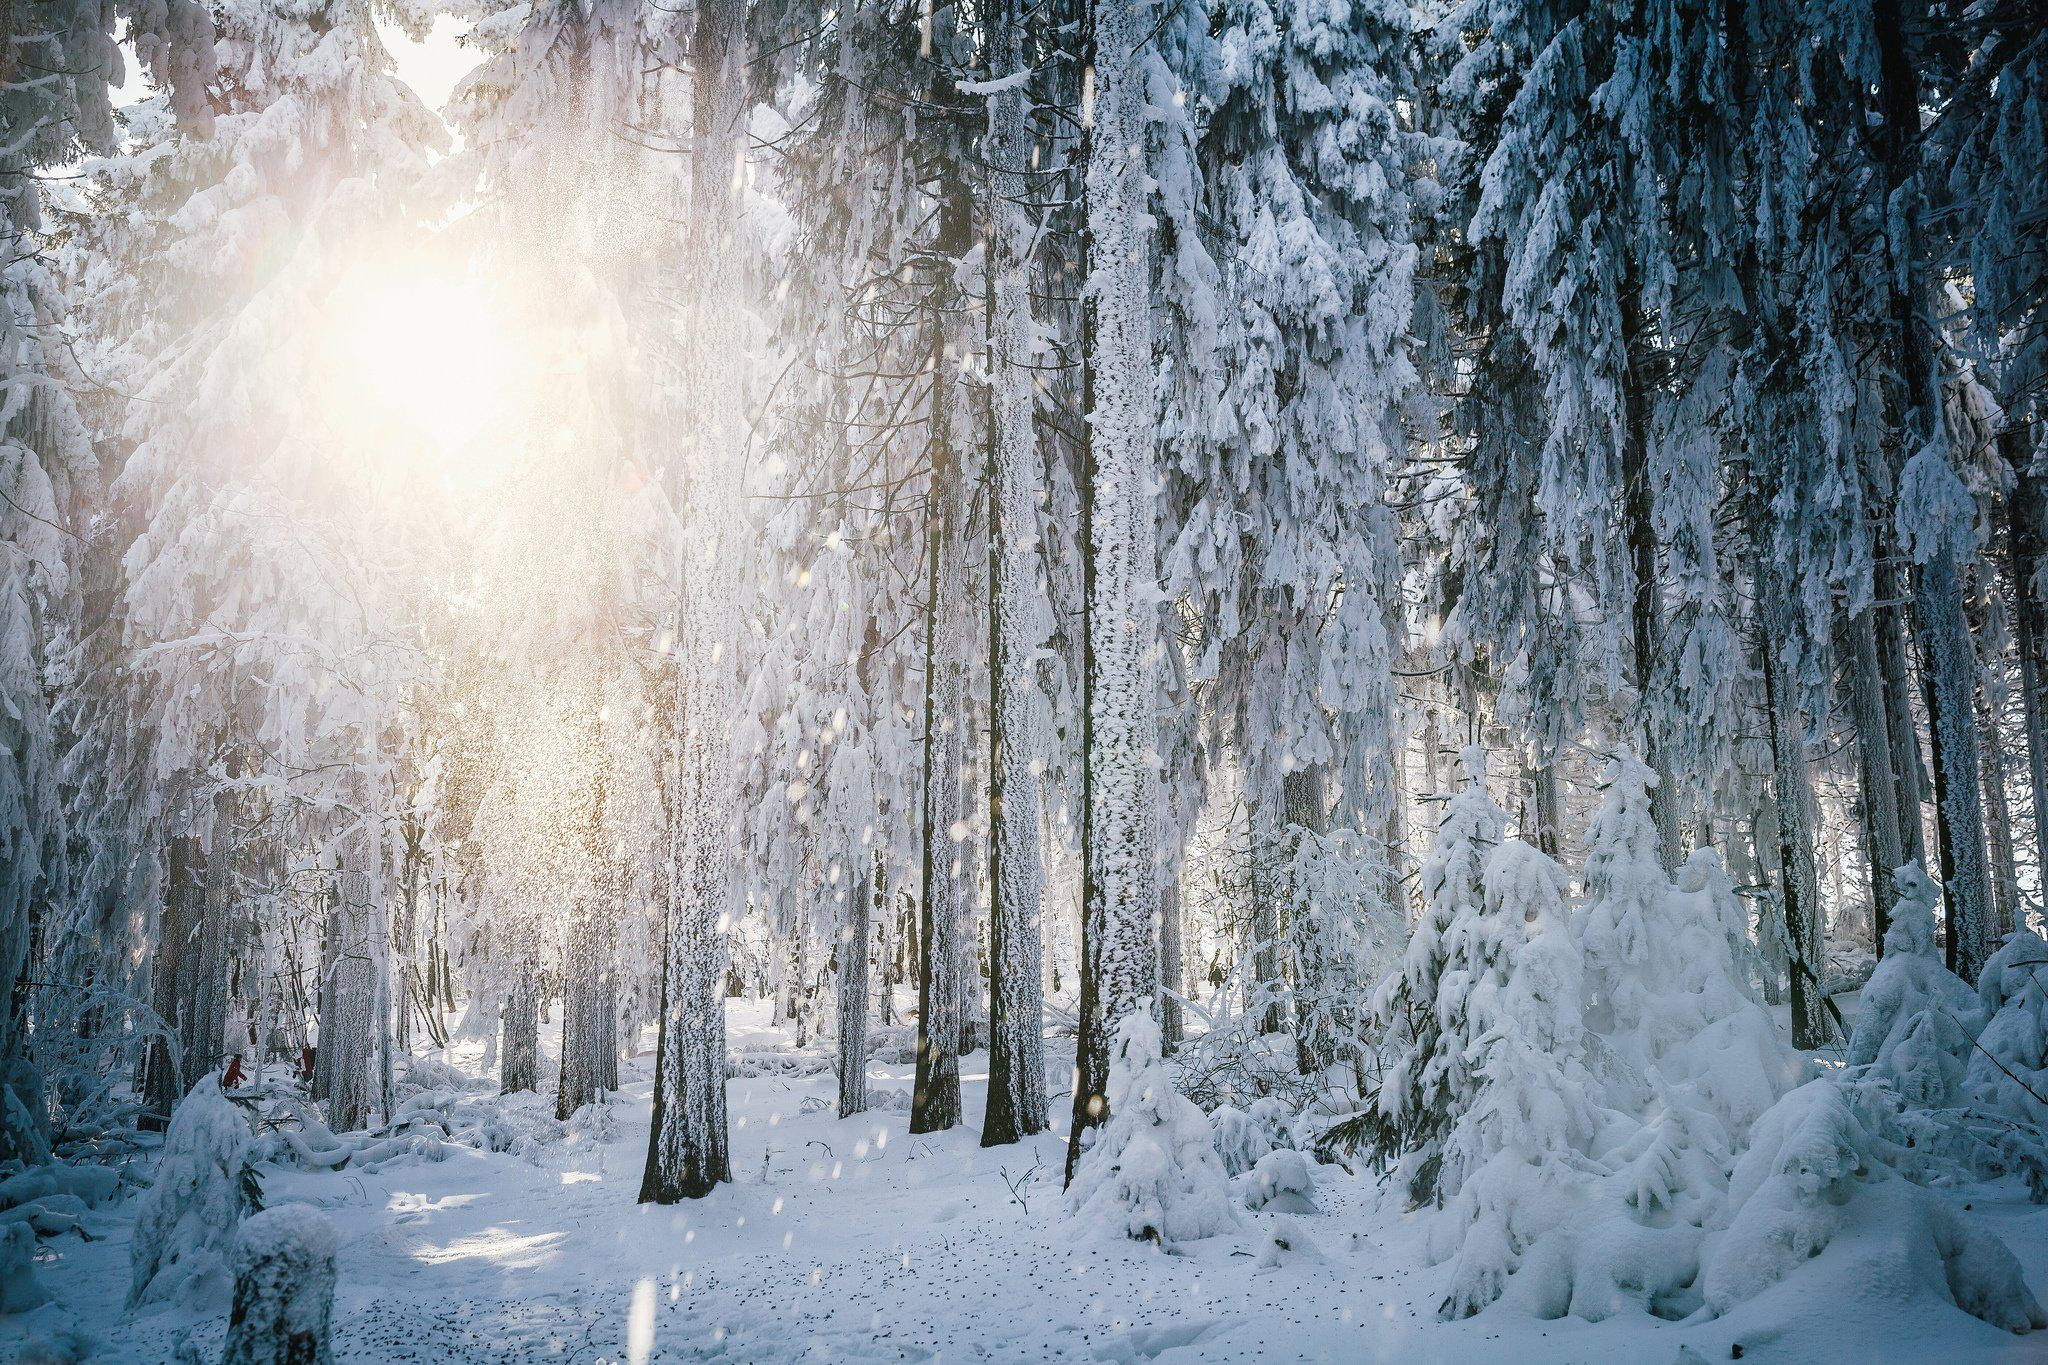 HD Sun Frost Winter Forest Trees Snow HD Background Wallpaper